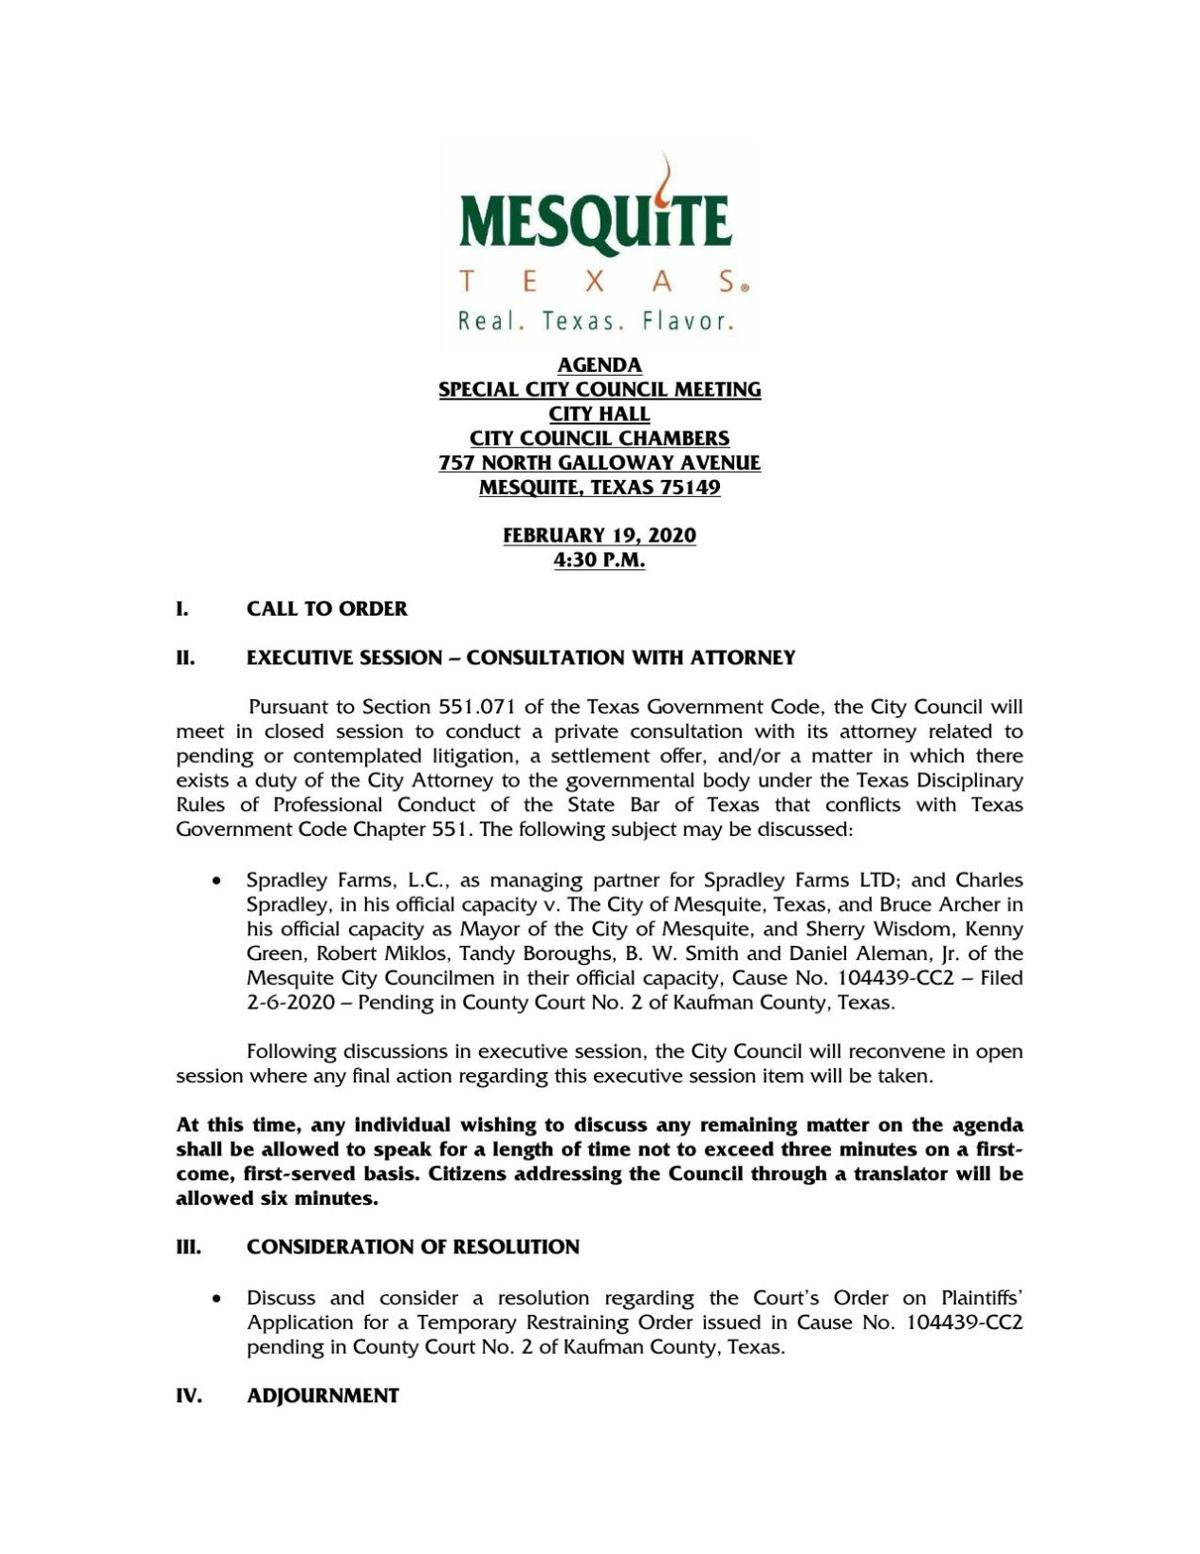 Special Mesquite City Council meeting scheduled for Feb. 19